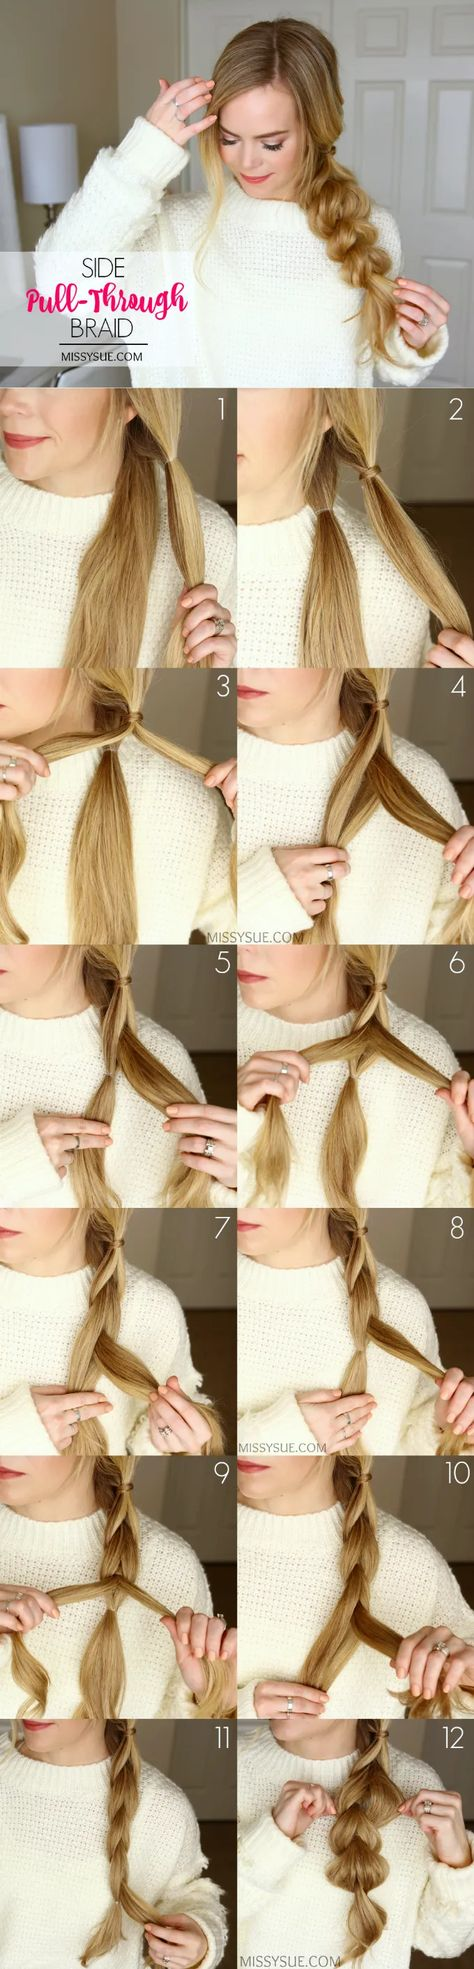 15 Easy Prom Hairstyles for Long Hair You Can DIY At Home ...